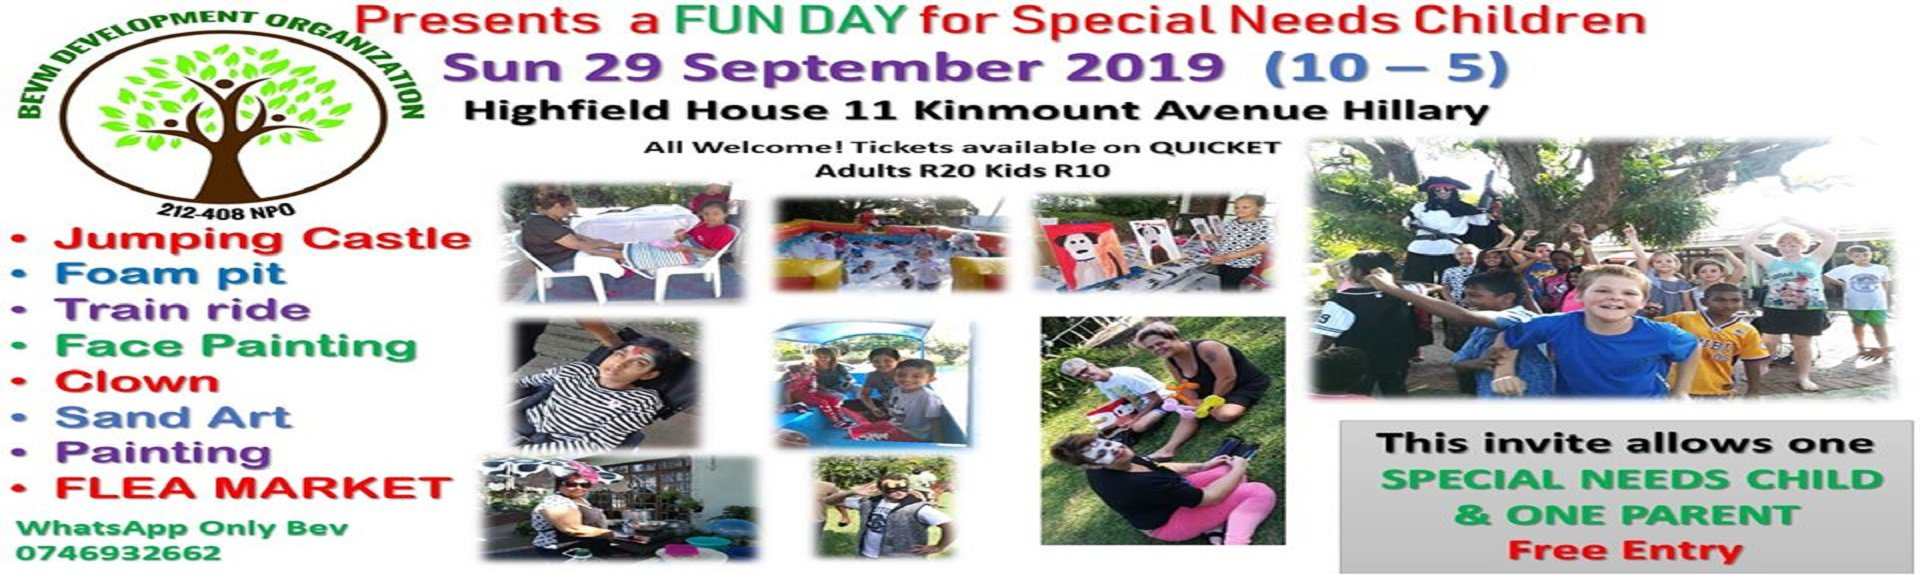 Fun Day for Special Needs kids | Durban | Things to do With Kids